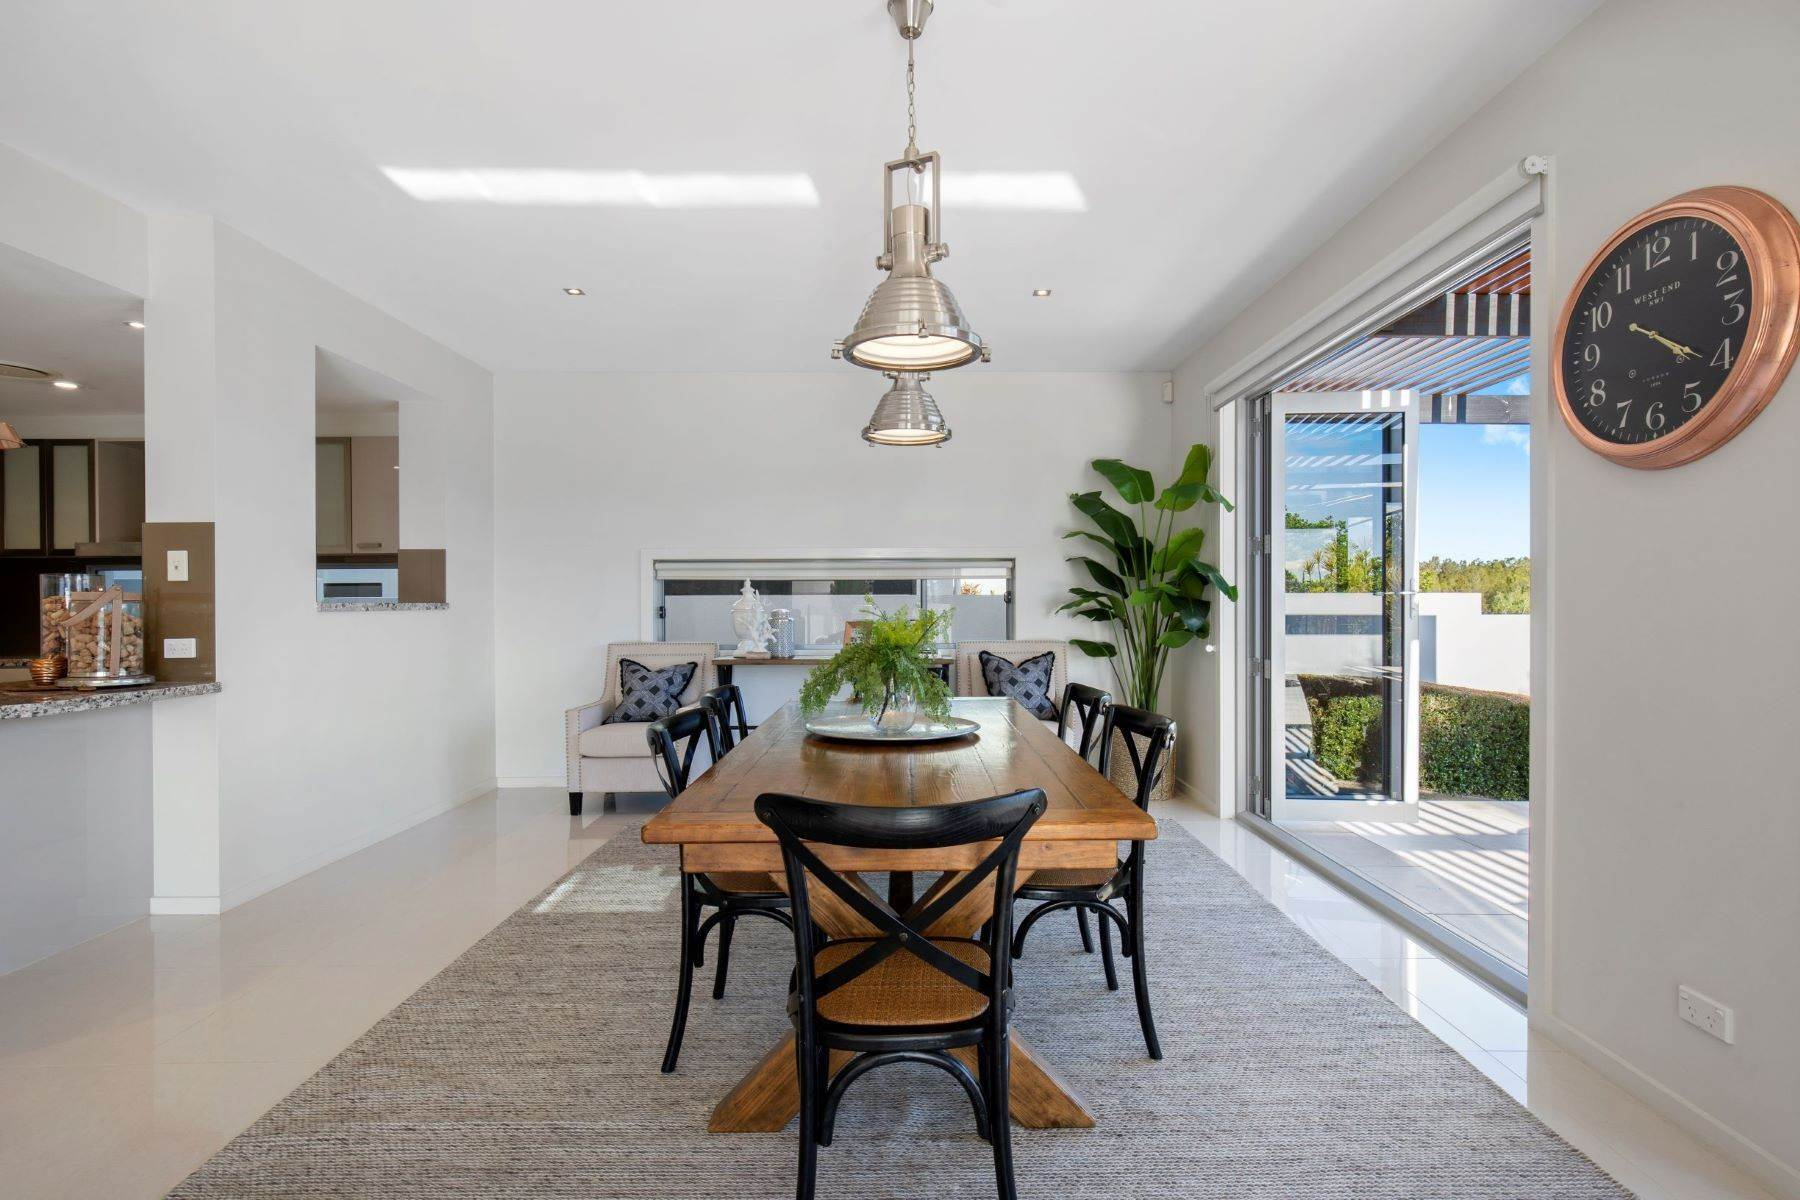 11. Single Family Homes for Sale at Luxury Lakeside Family Home on Prestigious Emerald Island 5068 Emerald Island Drive Other Queensland, Queensland 4211 Australia